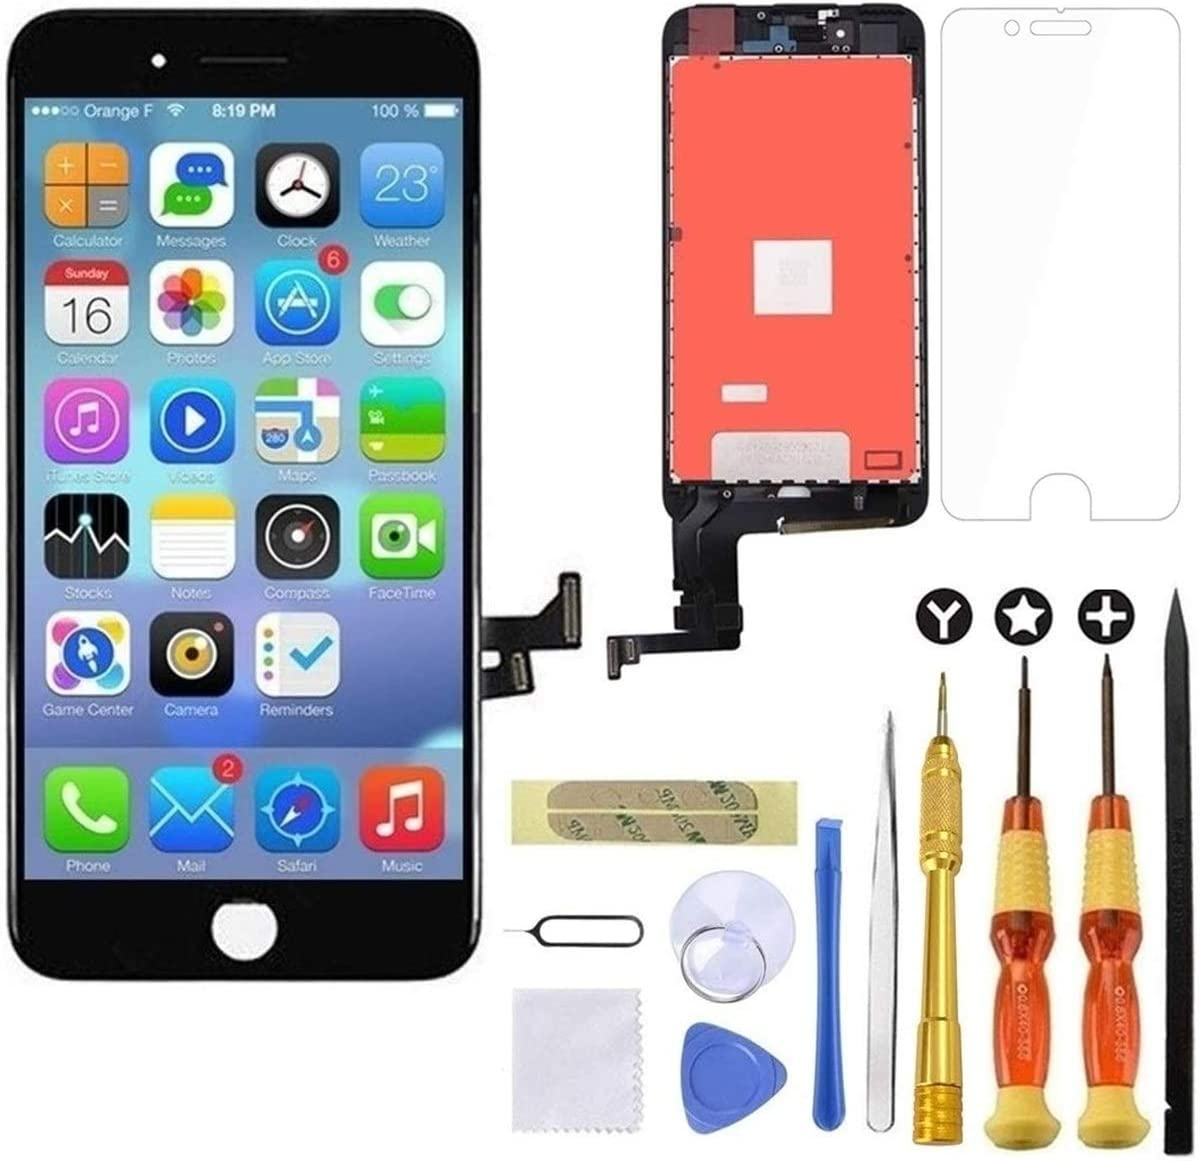 Goldwangwang iPhone 7 Plus Screen Replacement Black,5.5inch 3D Touch LCD Screen Digitizer Replacement Frame Display Assembly Set with Repair Tool kit + Tempered Glass Screen Protector + Instruction